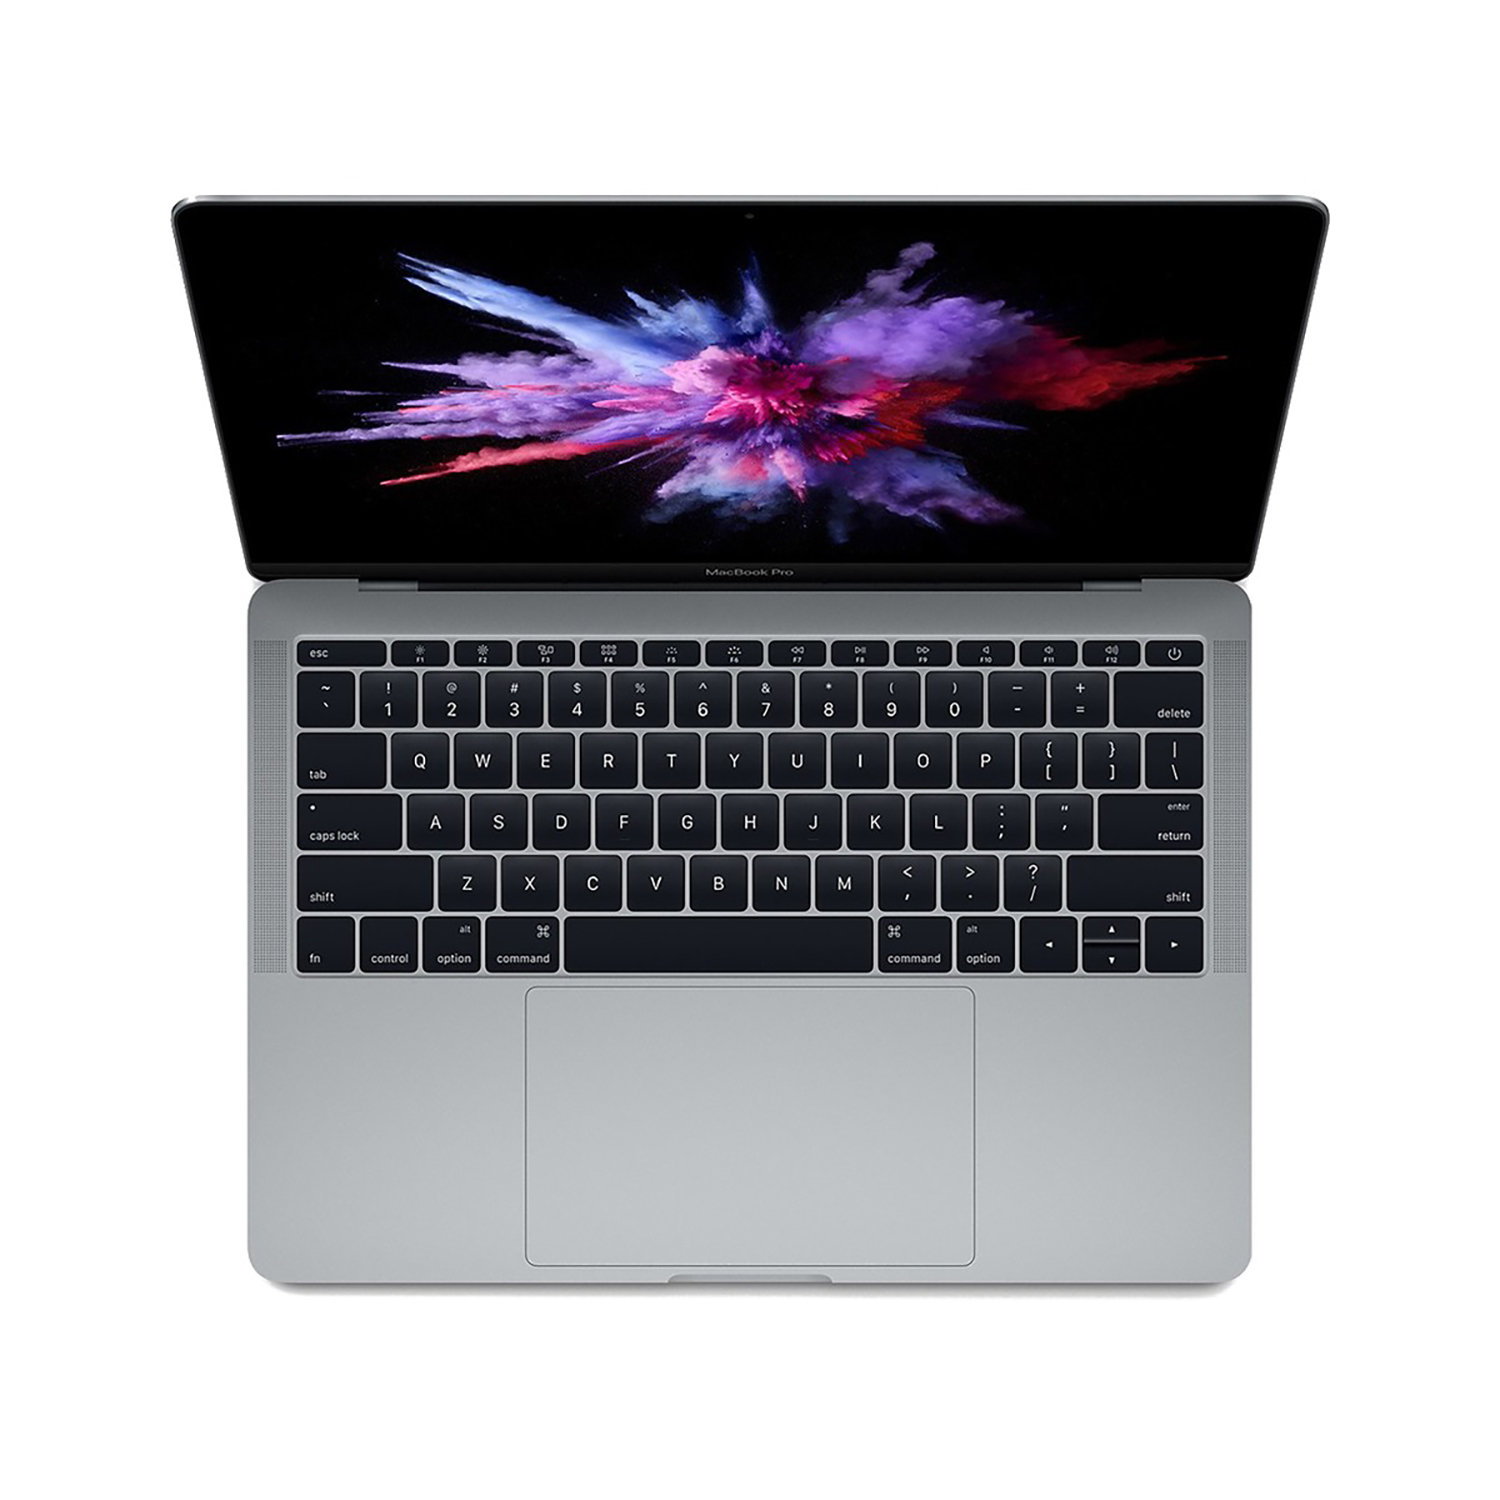 Image for Apple MacBook Air 13inch 8th Generation MacOS i5 Processor Touch Bar 128GB Space Grey Ref MVFH2B/A